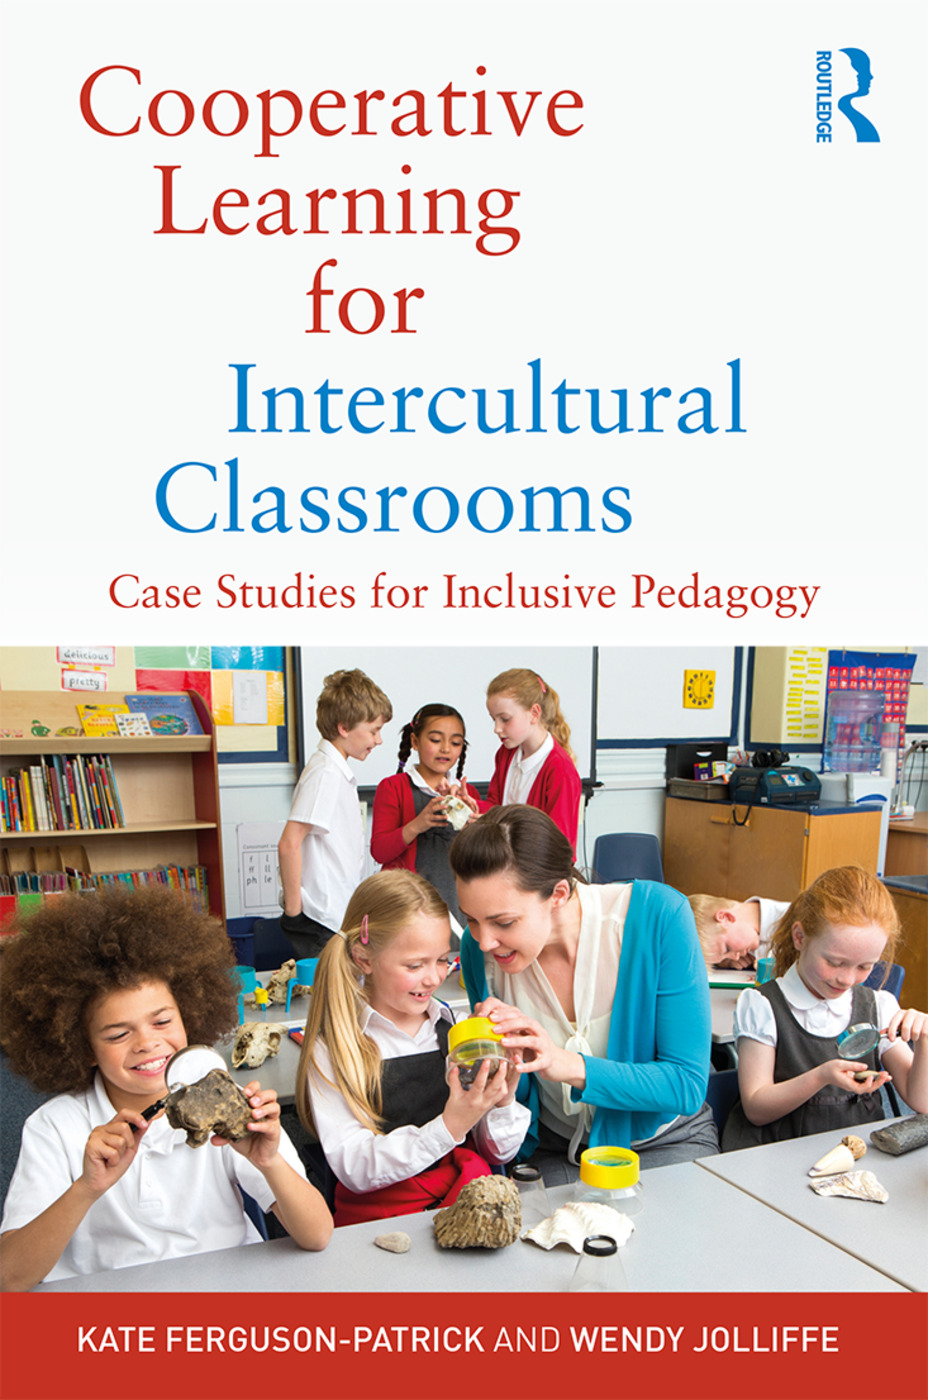 Cooperative Learning for Intercultural Classrooms: Case Studies for Inclusive Pedagogy book cover